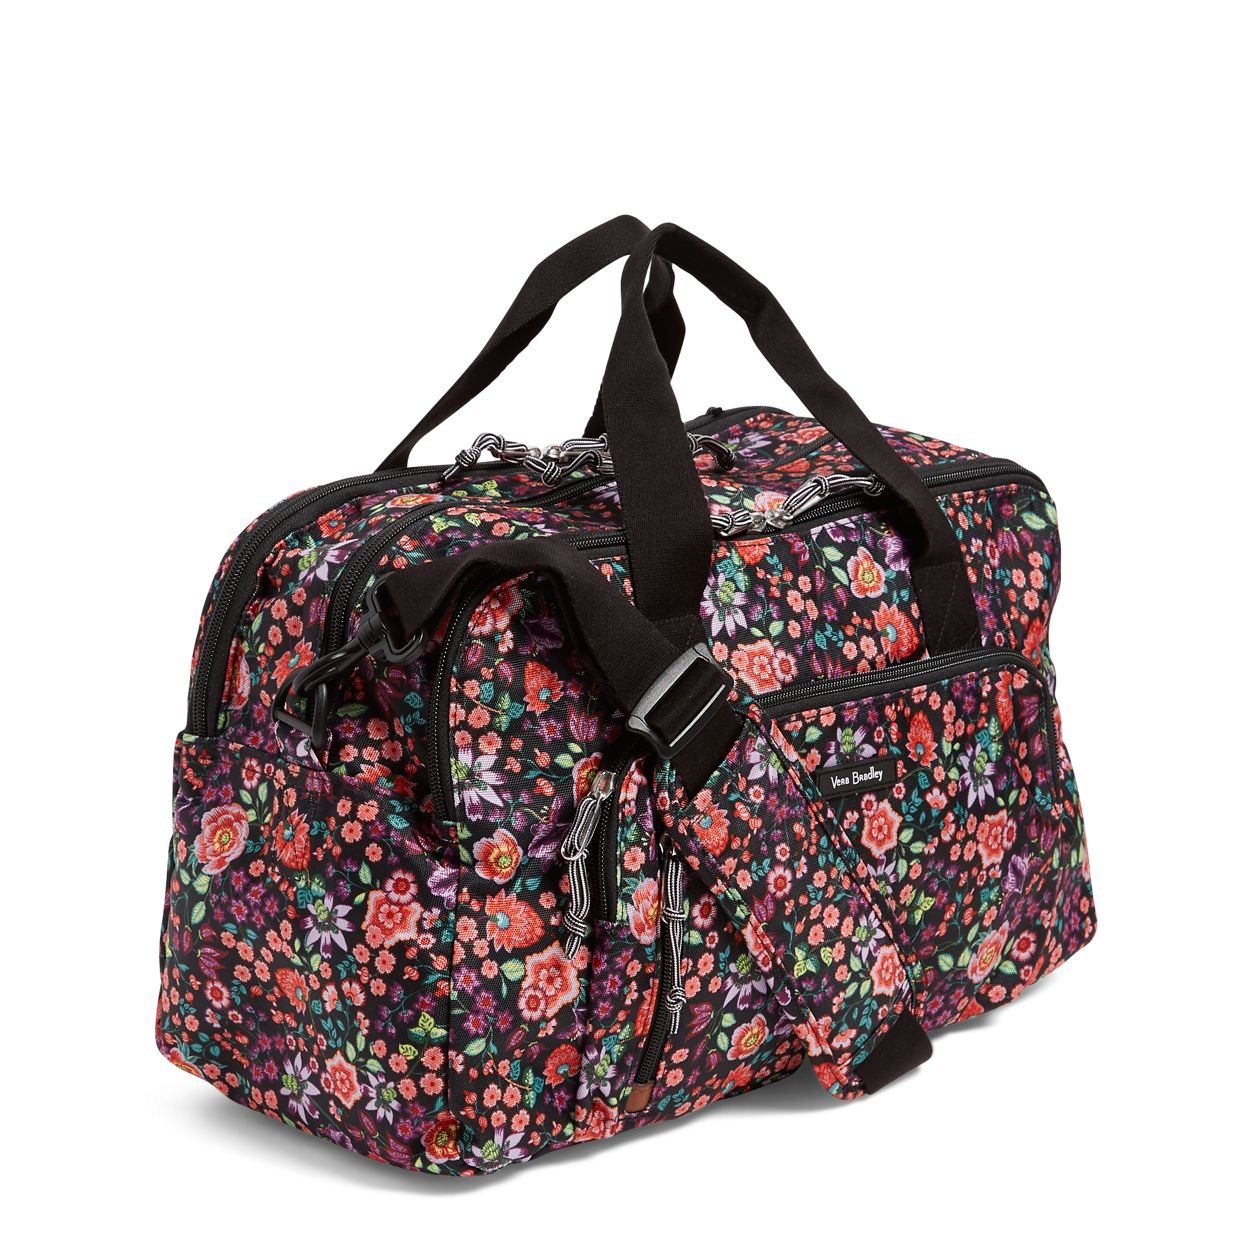 8101f35a3 ... Image of Lighten Up Compact Weekender in Tossed Posies ...